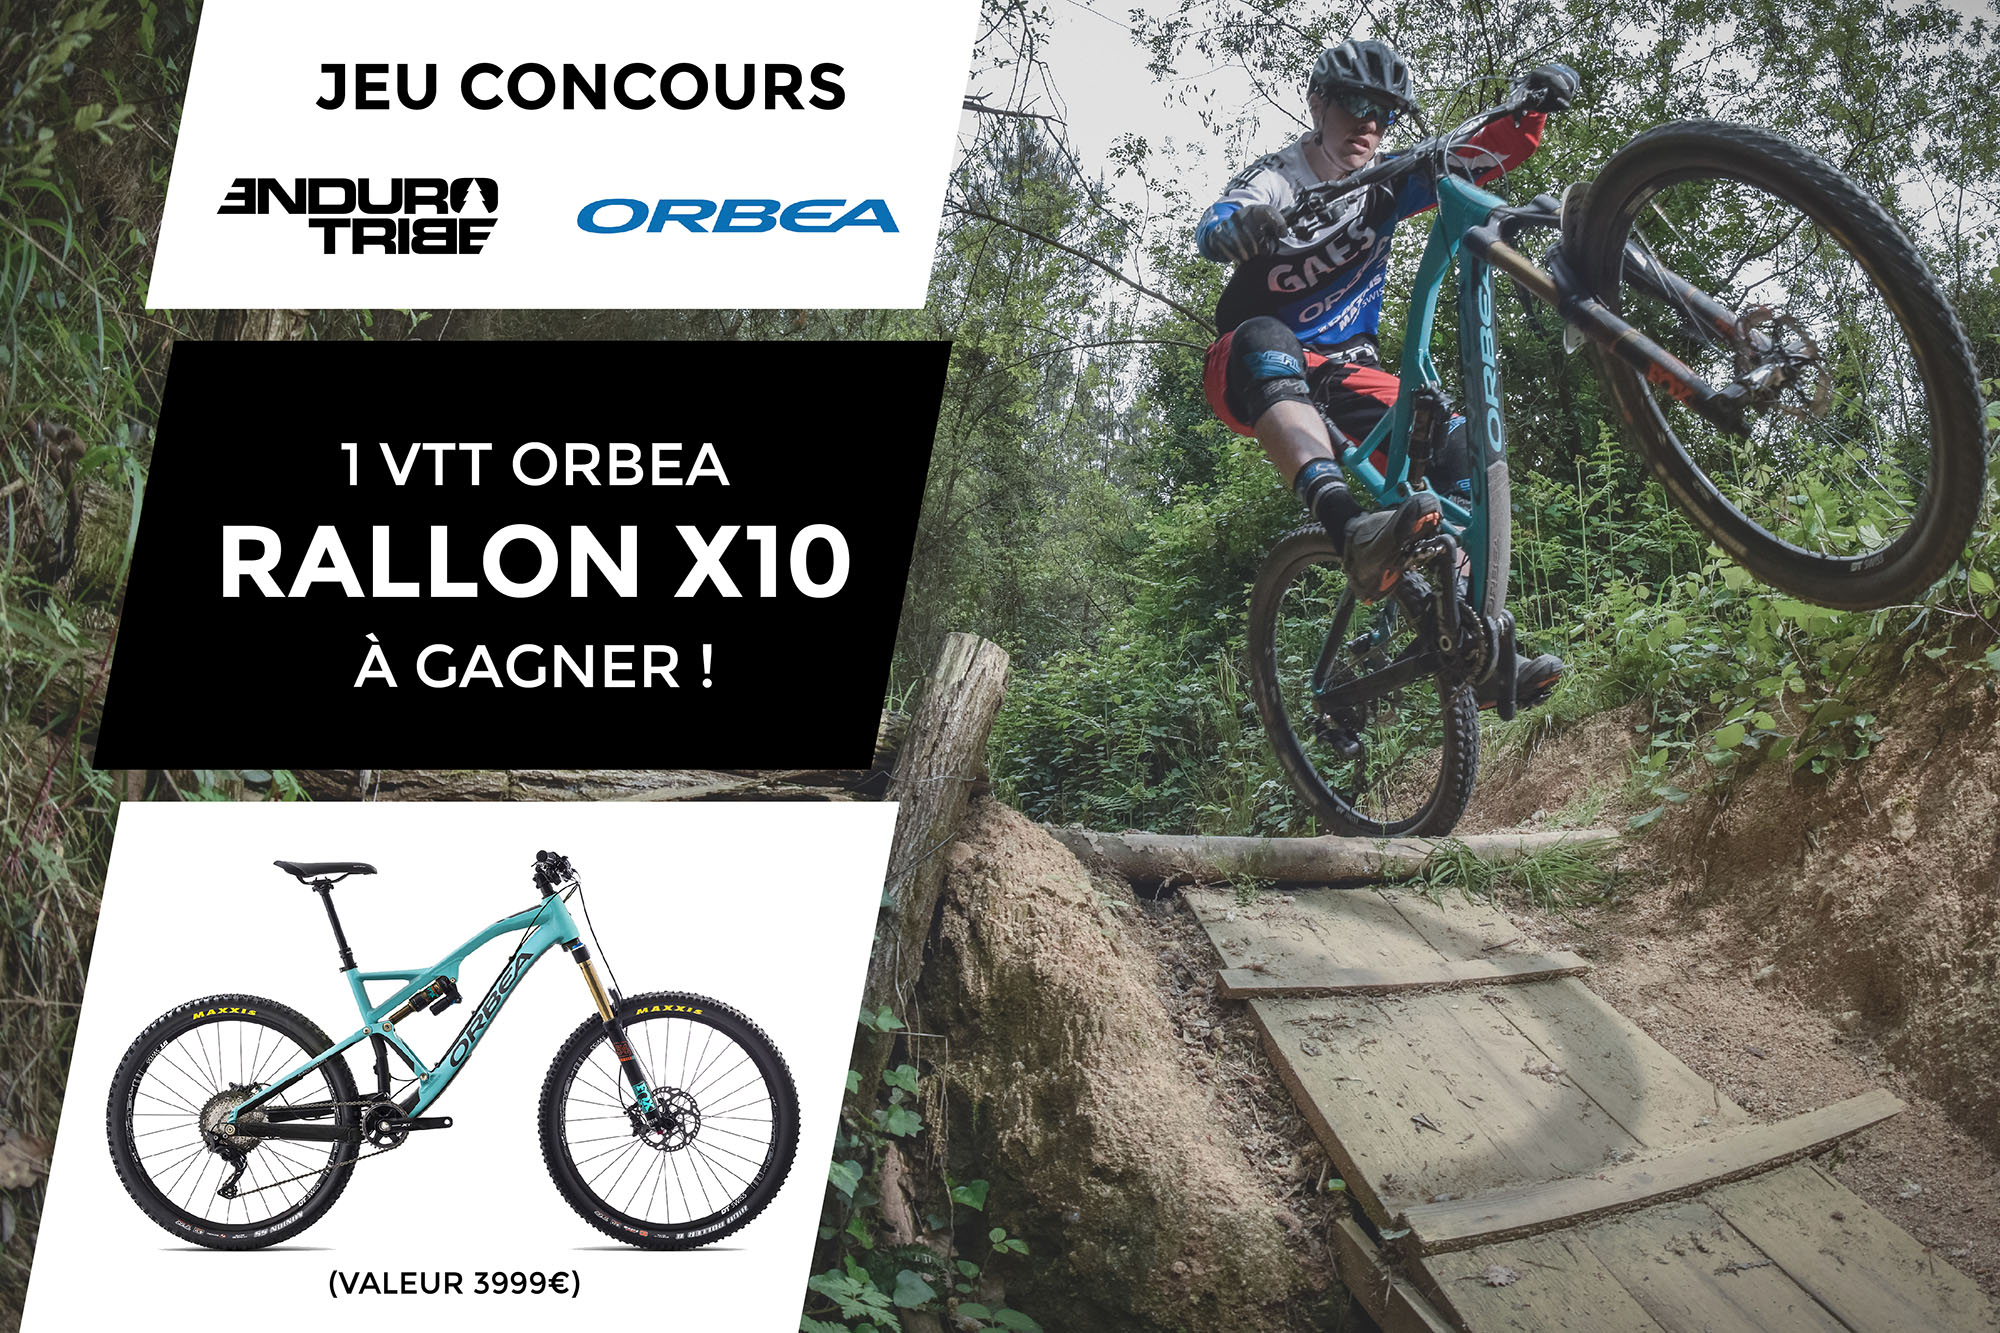 jeu concours endurotribe un orbea rallon x10 gagner. Black Bedroom Furniture Sets. Home Design Ideas